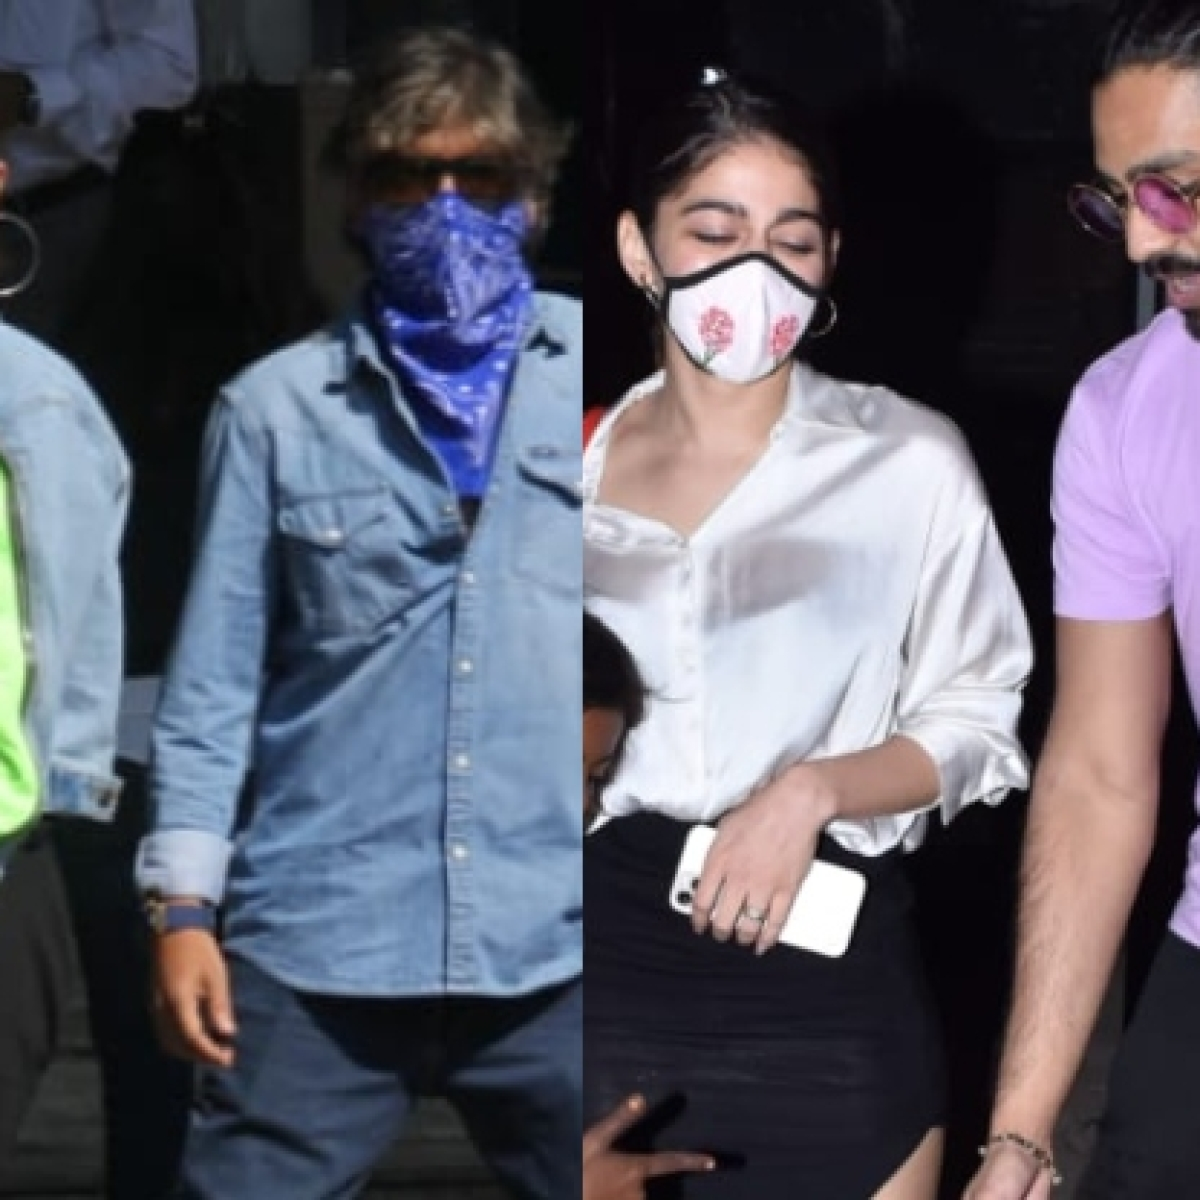 In Pics: Alia Bhatt jets off to shoot 'RRR'; Alaya F steps out with Bal Thackeray's grandson Aaishvary